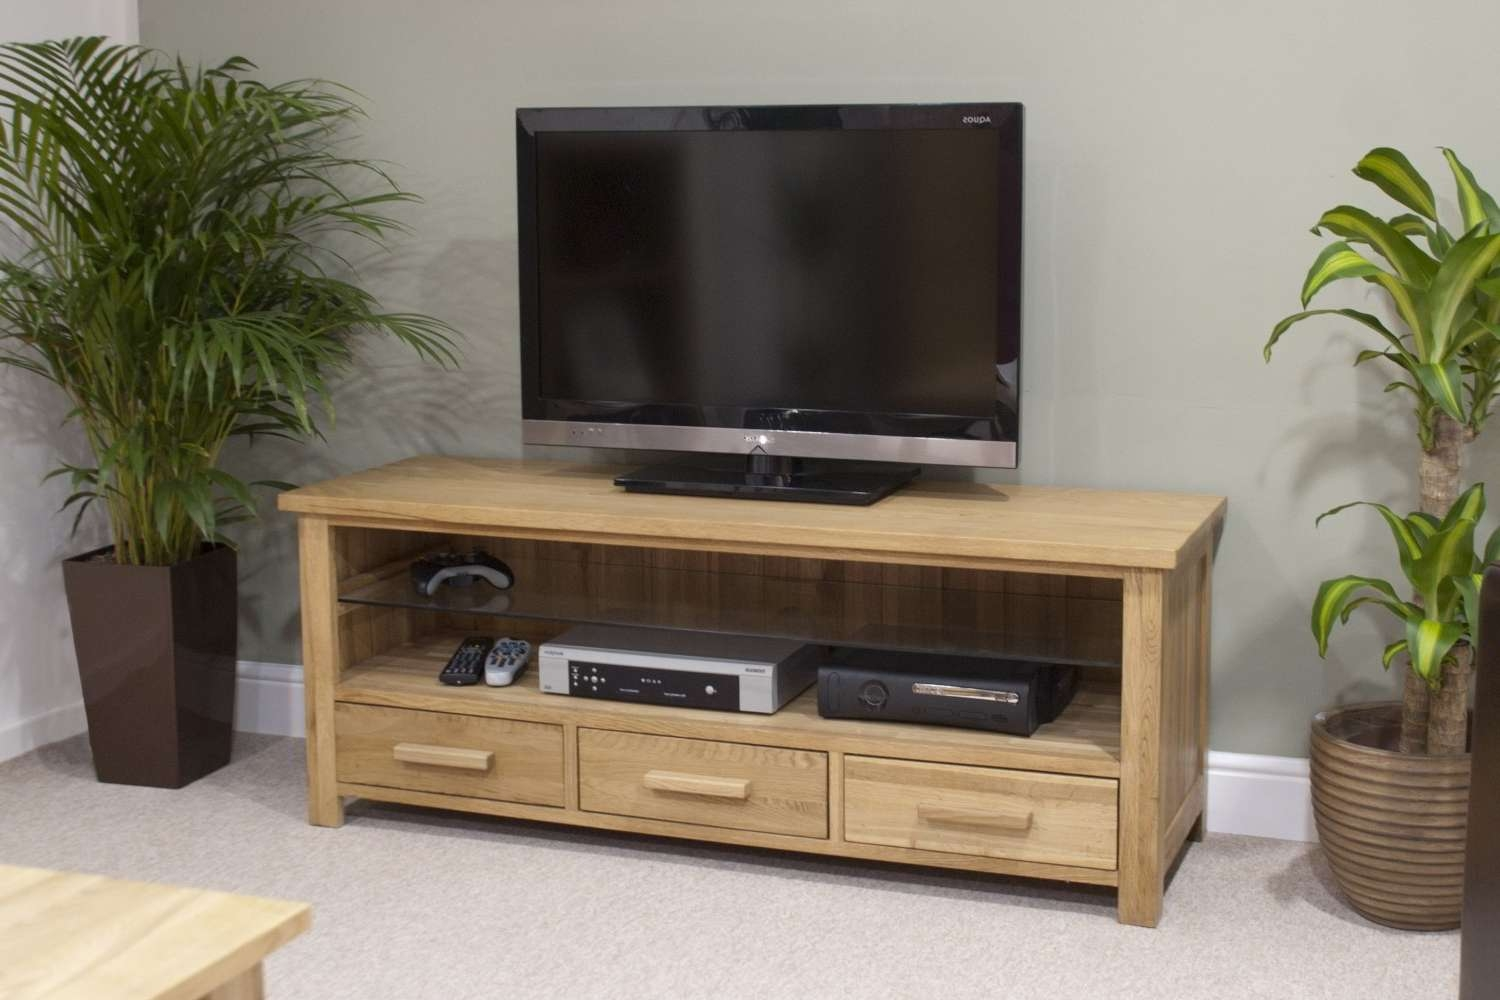 Eton Solid Oak Living Room Furniture Widescreen Tv Cabinet Stand With Regard To Wide Screen Tv Stands (View 7 of 15)